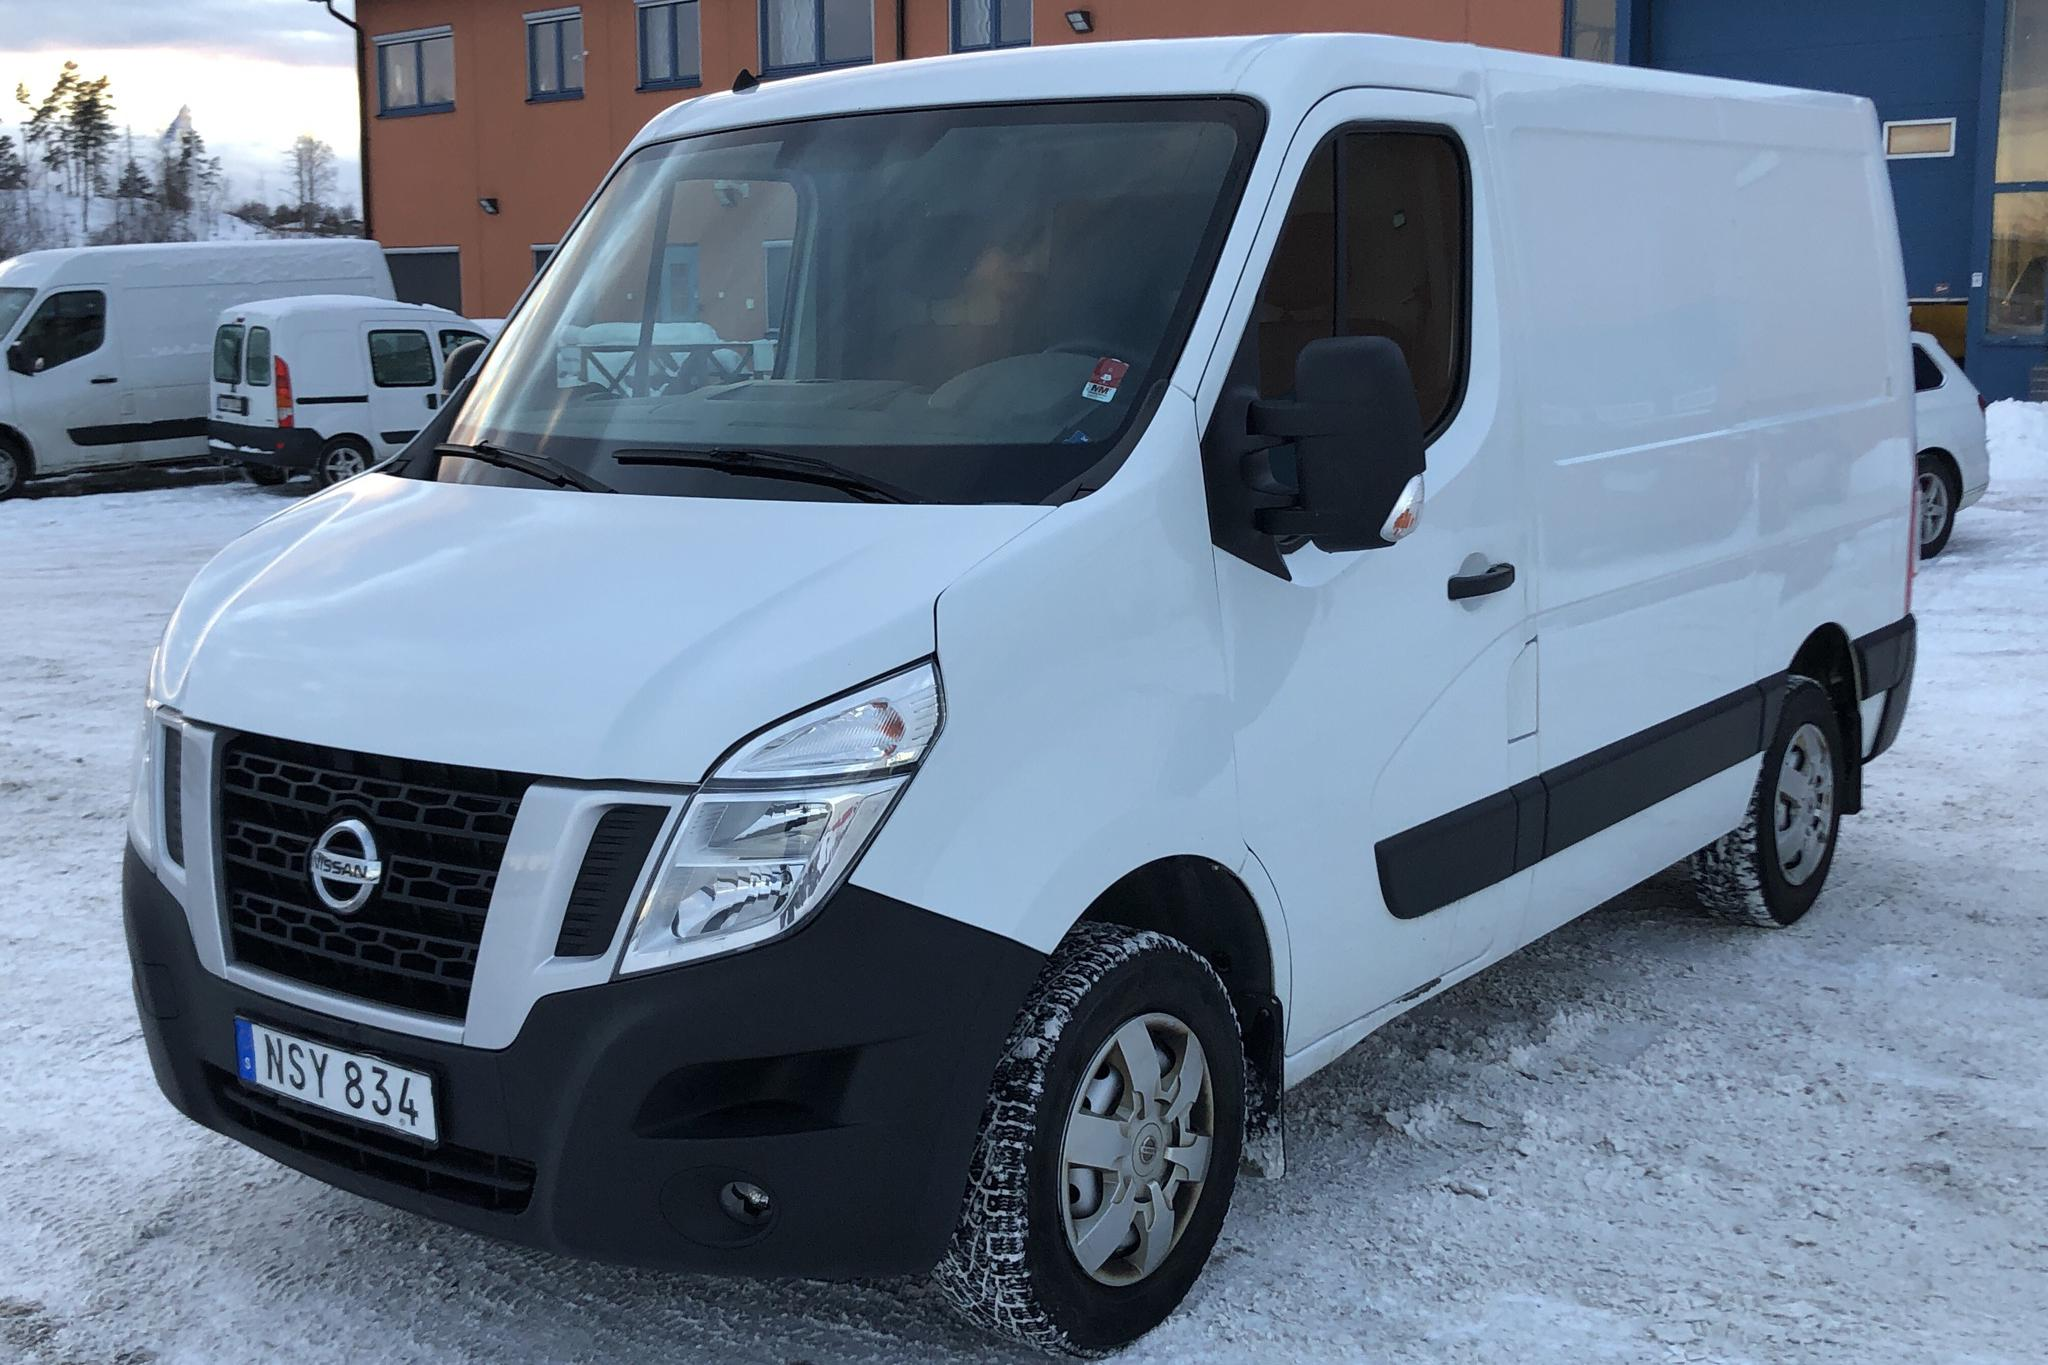 Nissan NV400 2.3 dCi Skåp (125hk) - 106 970 km - Manual - white - 2015